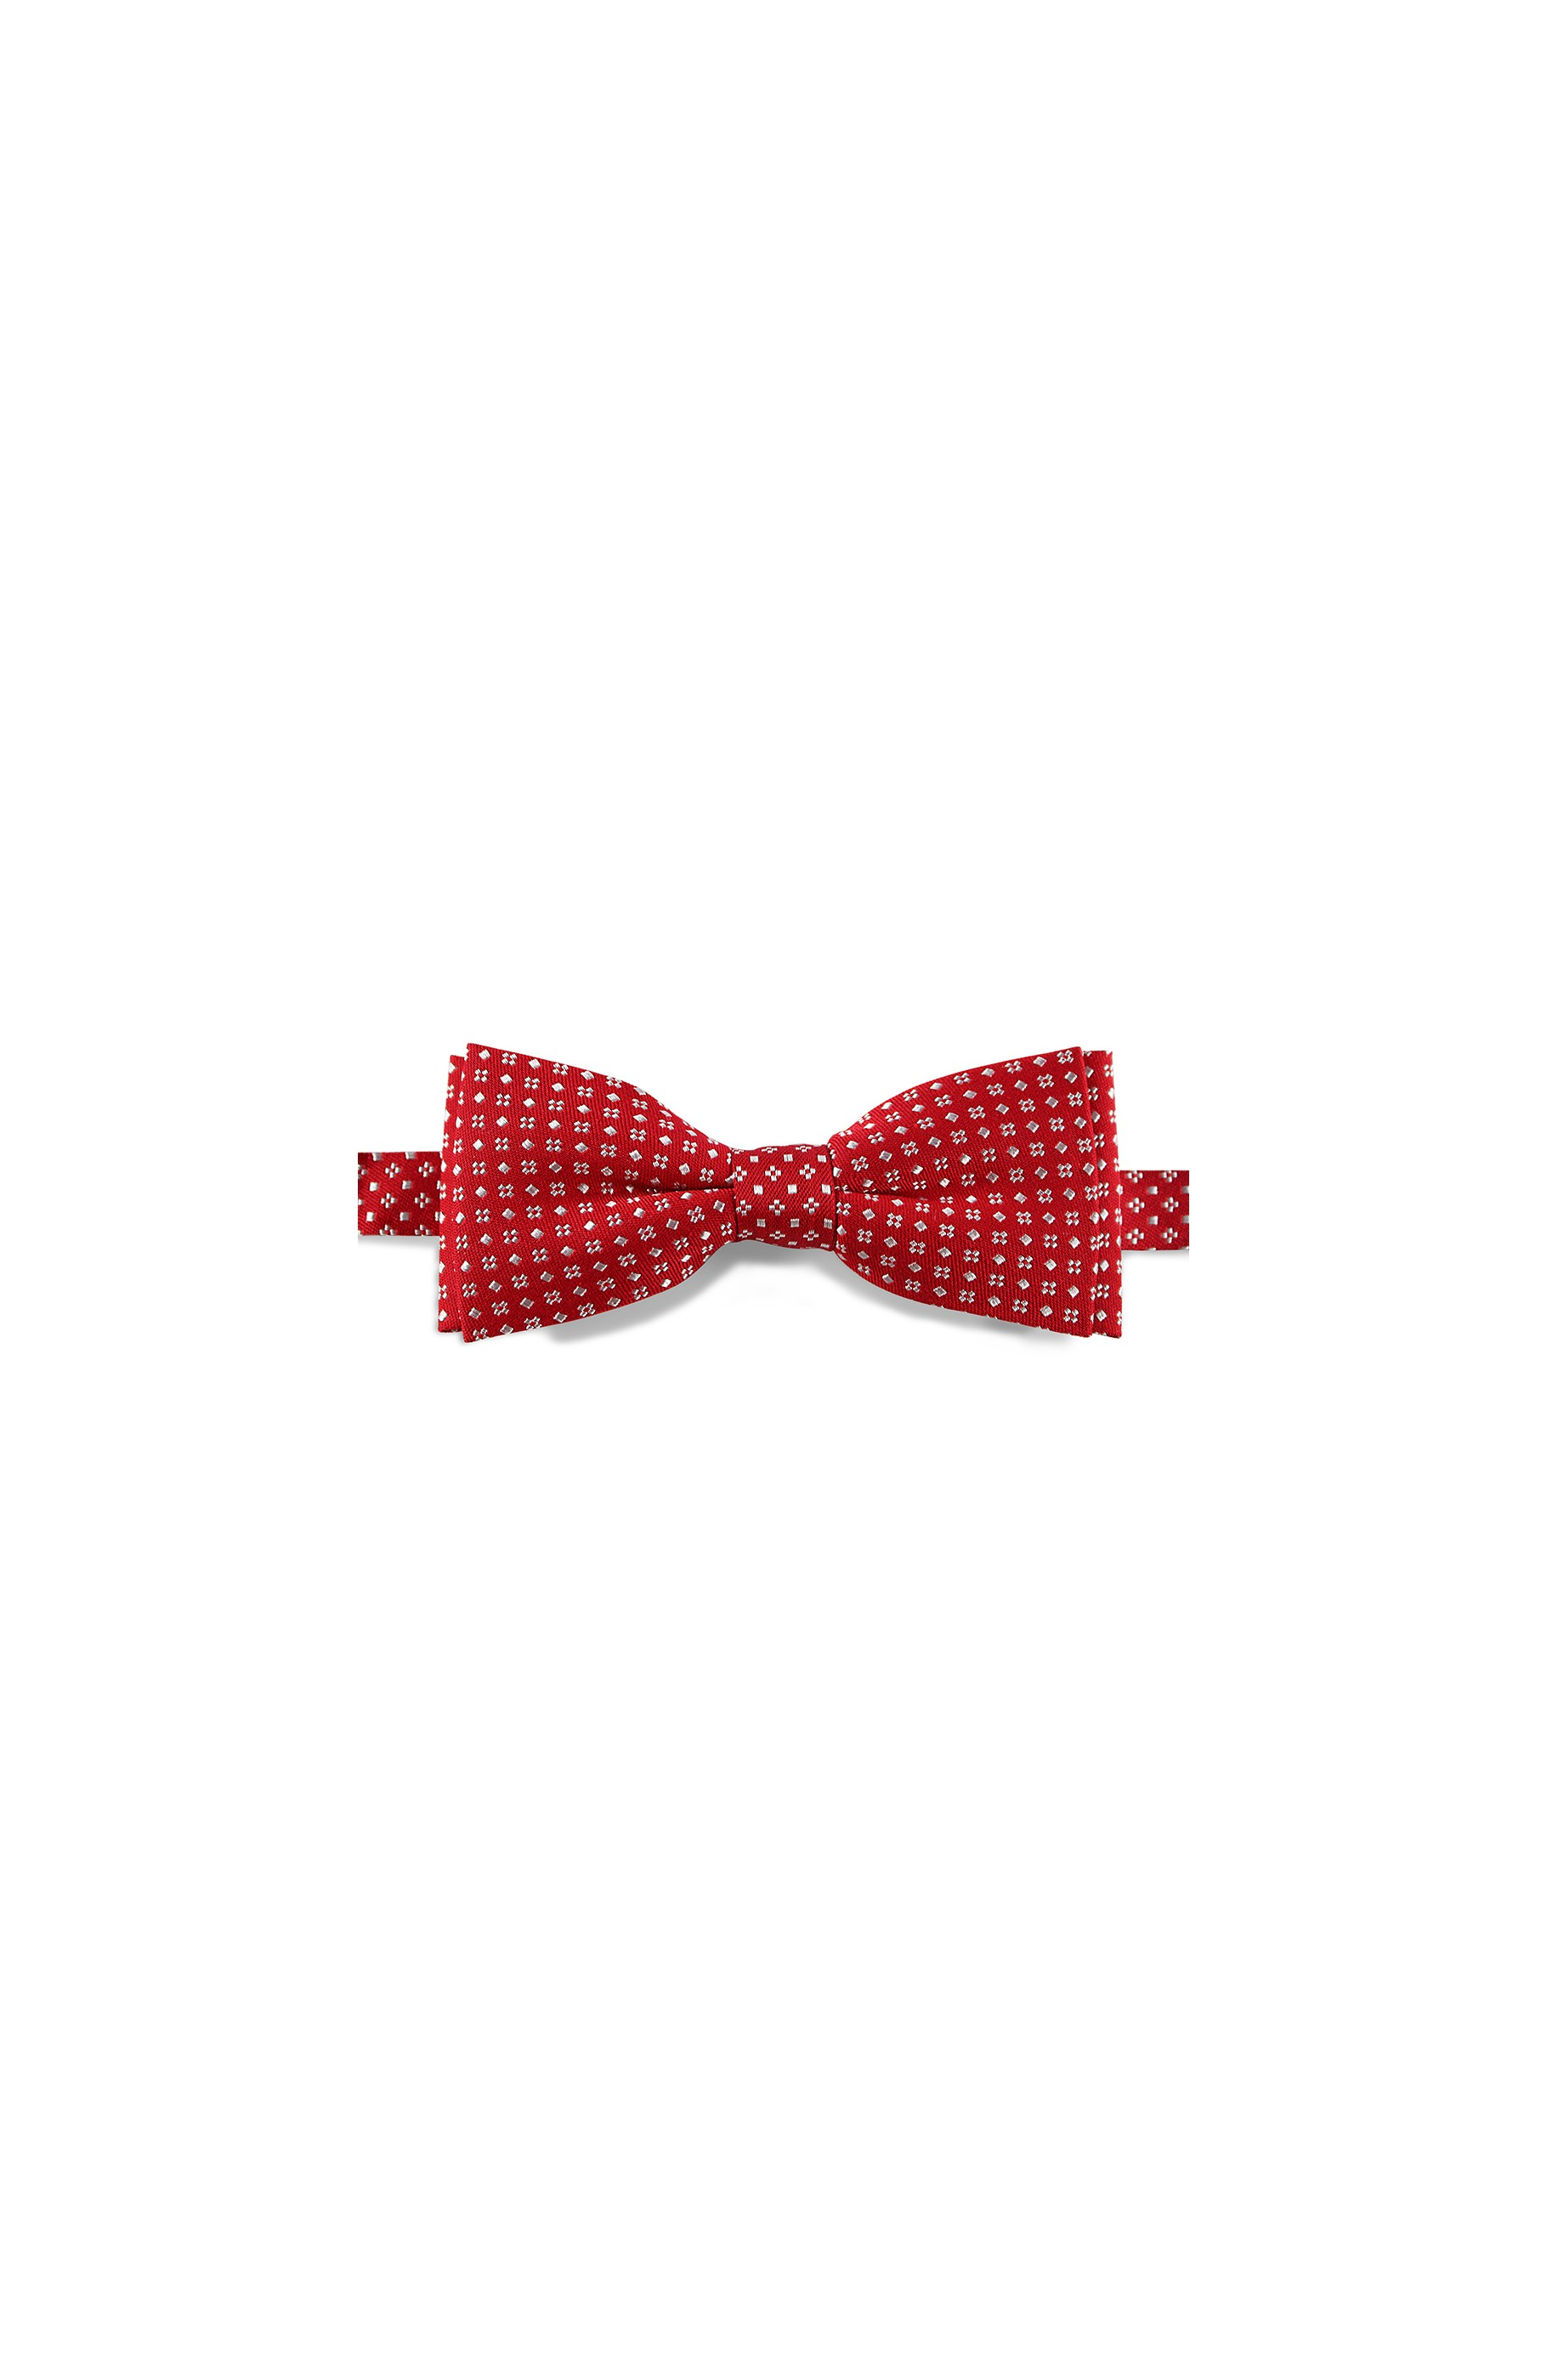 Majesté Couture Paris: Red silk bow tie with white dots | Accessories -  Hiphunters Shop